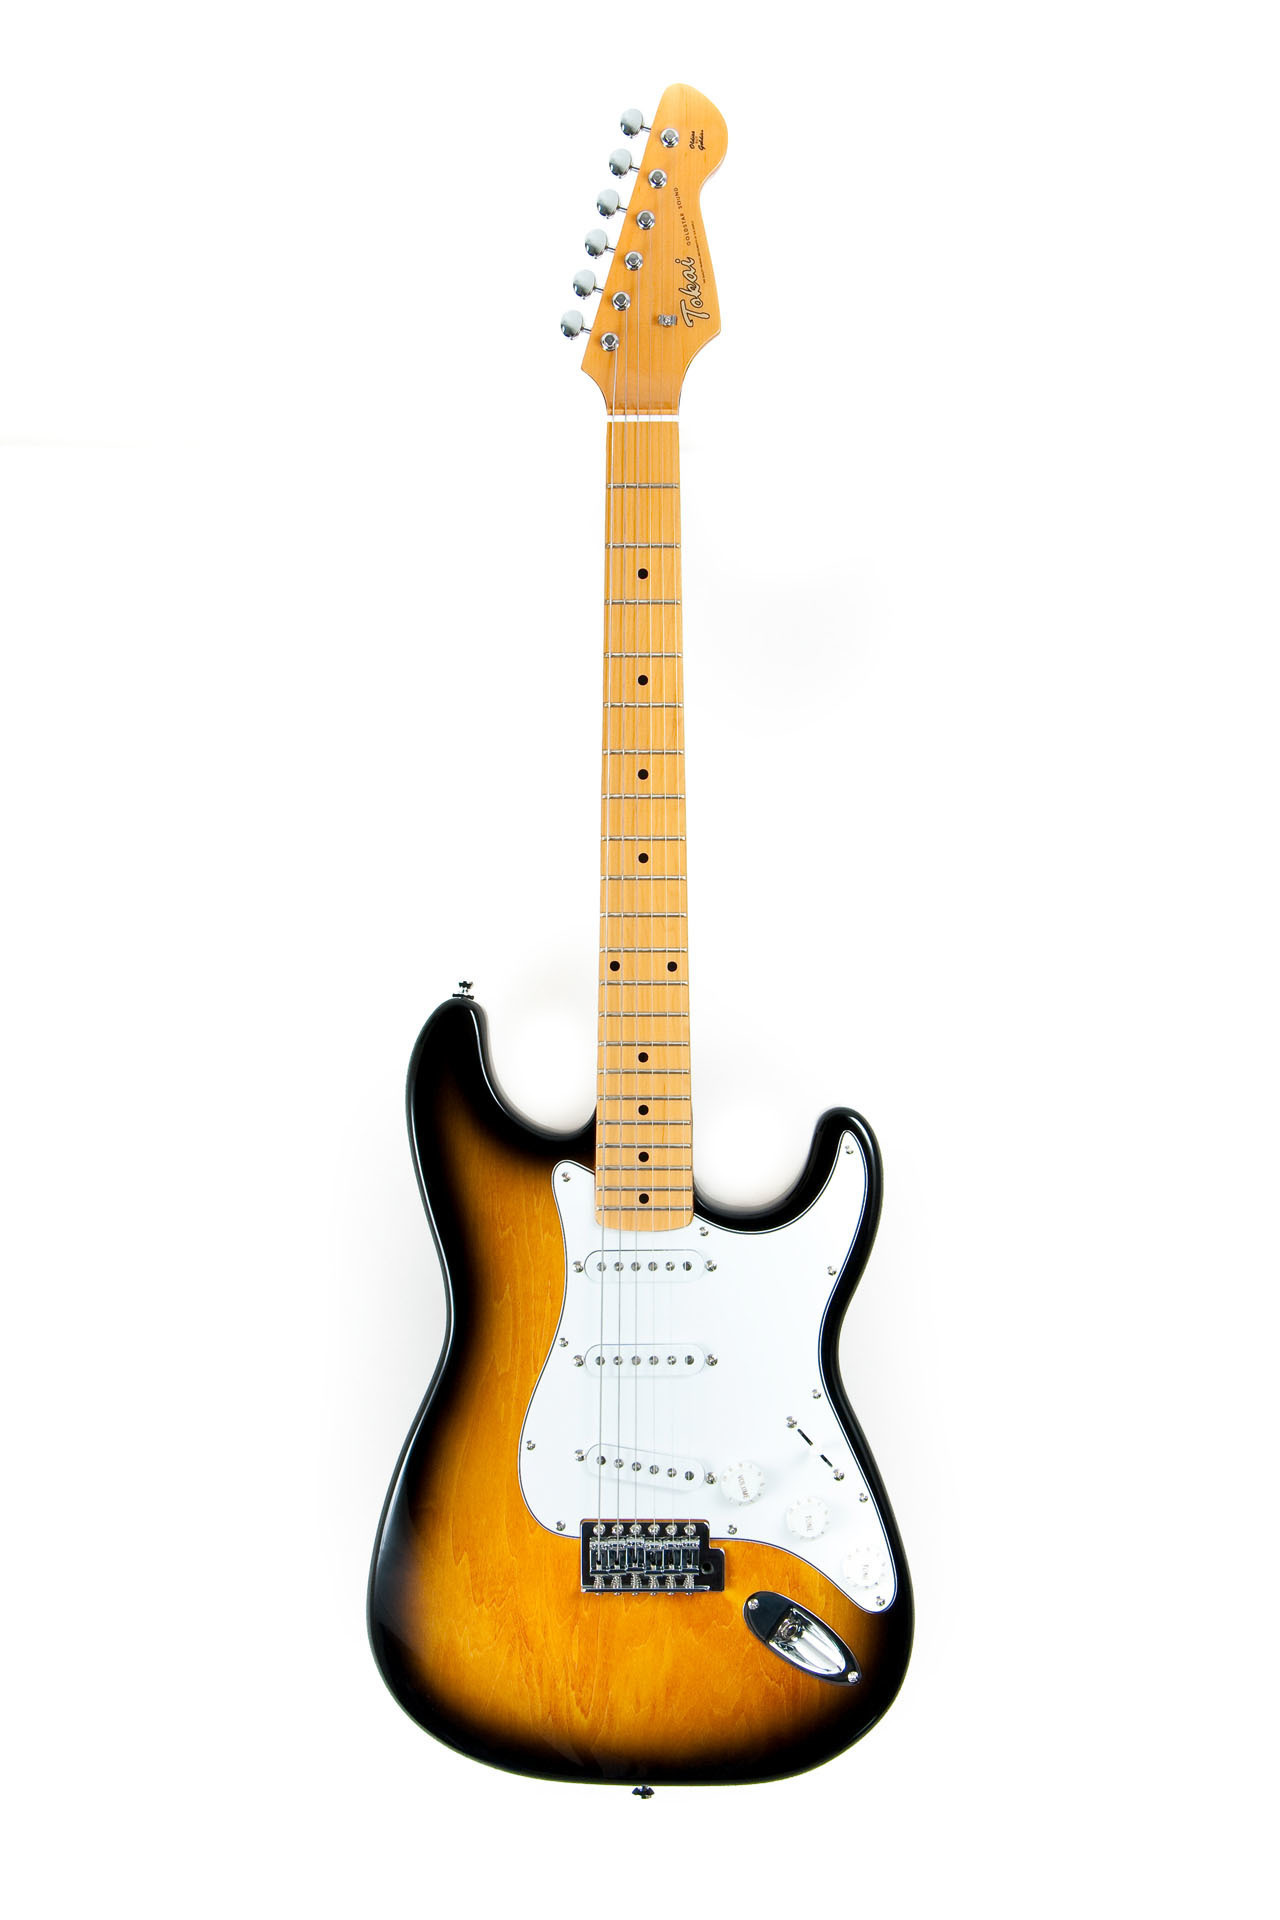 Tokai Guitars Product Photography by Wipdesigns Product Photographer Sheffield 44